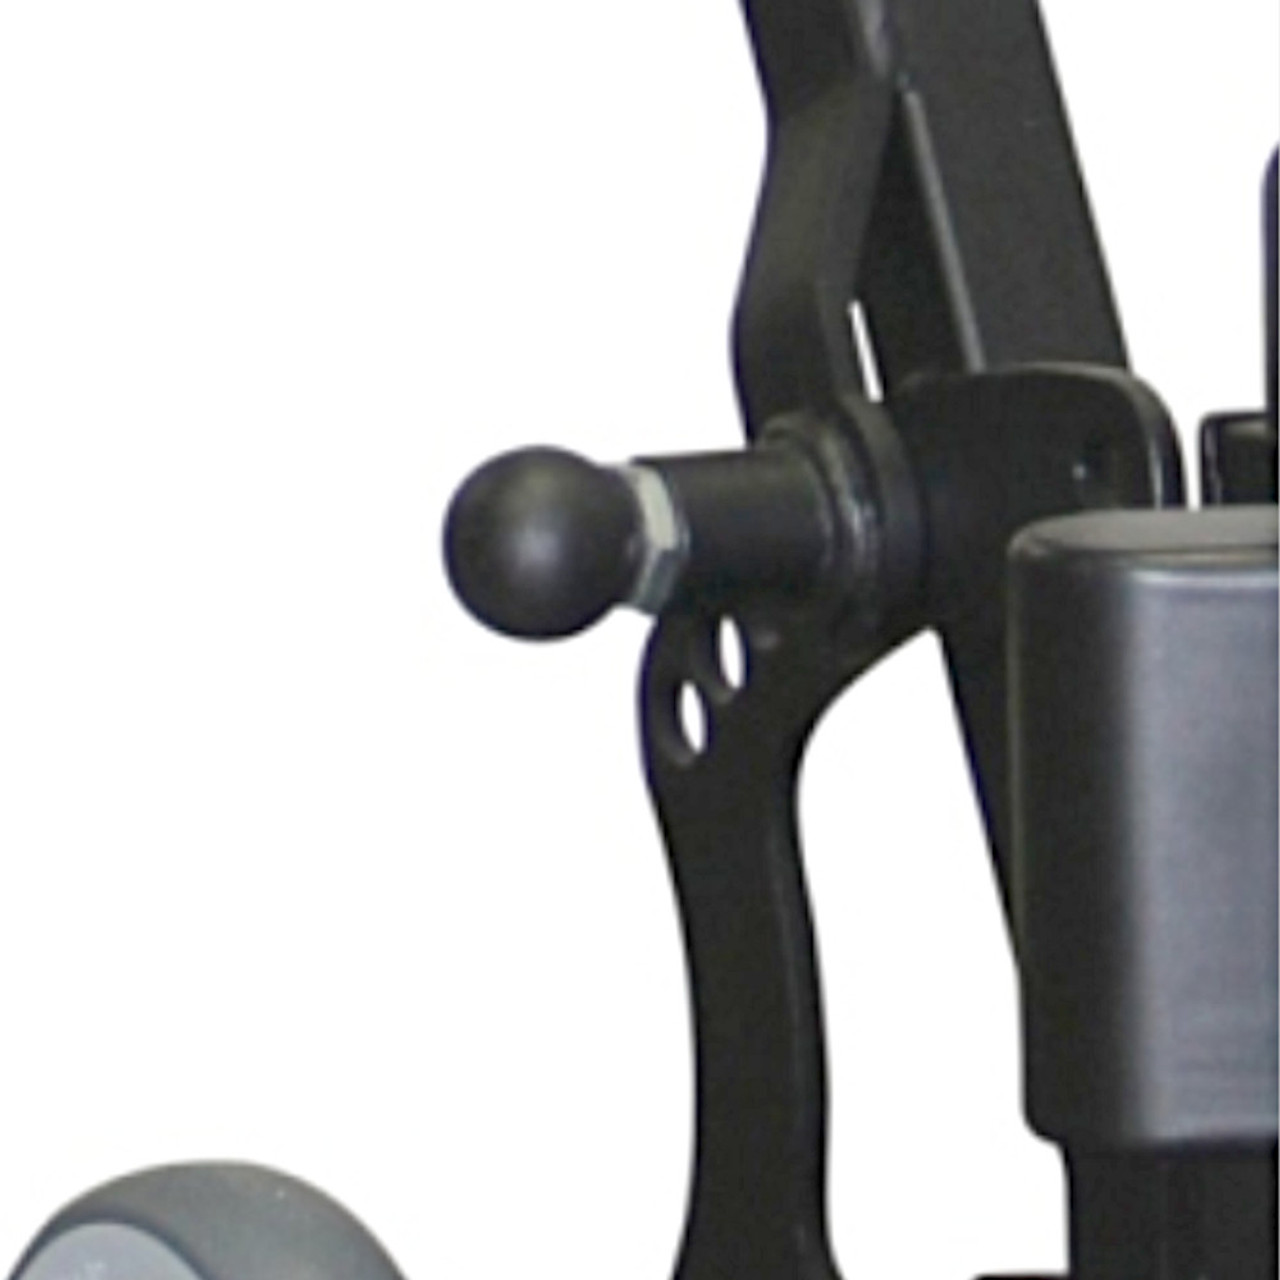 The Mighty features a six position handle with pin lock to adjust for different types of work.